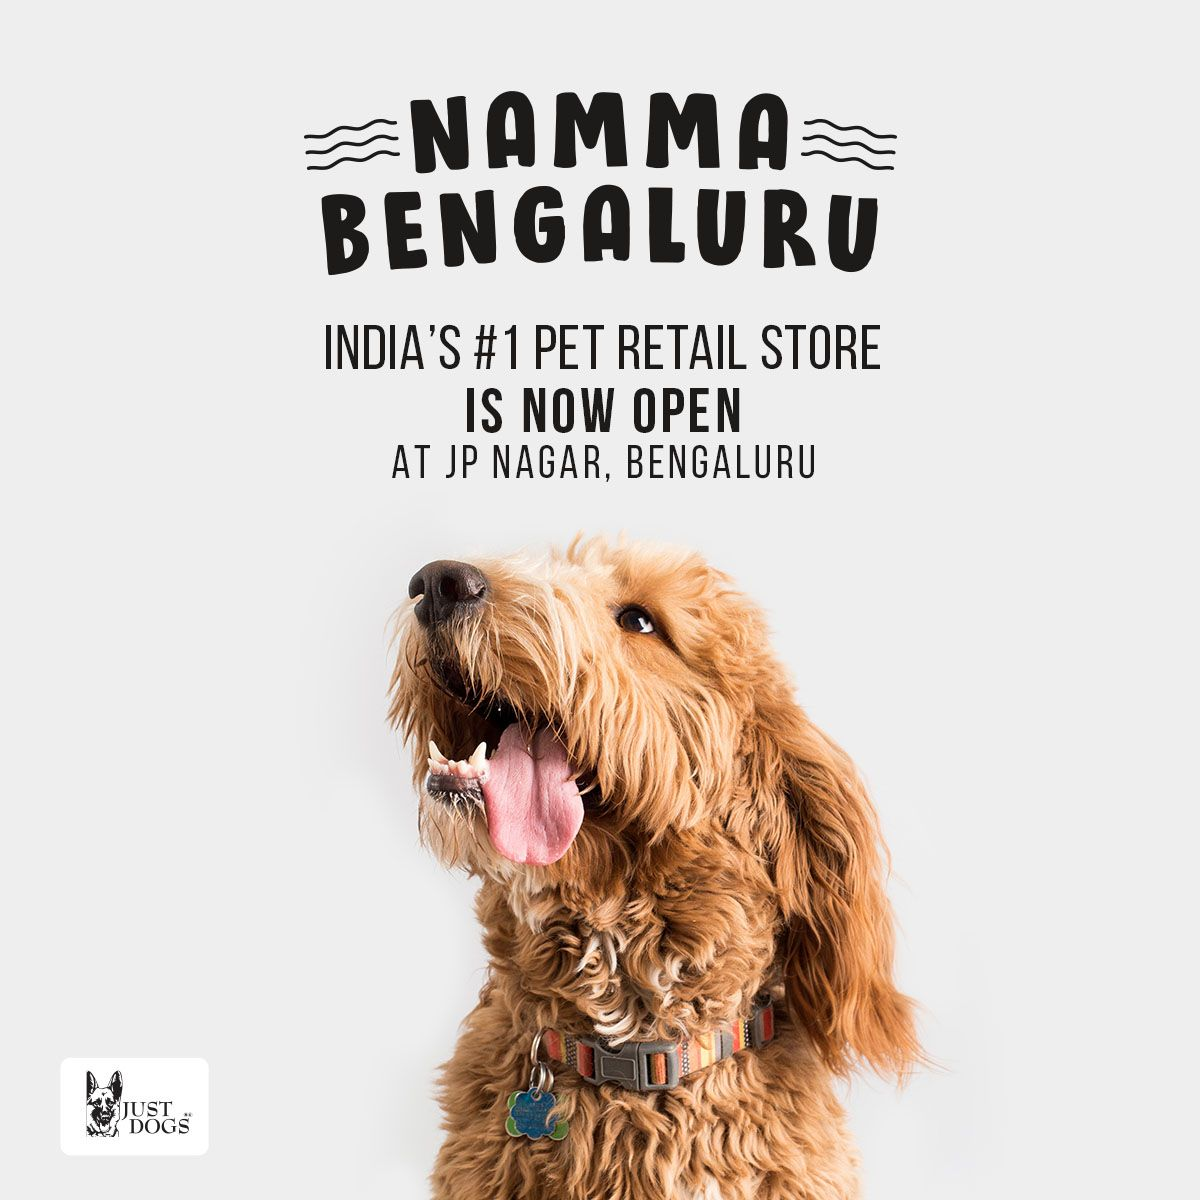 Just Dogs Jp Nagar Bengaluru Is Now Open Visit Today And Shop For Your Fur Buddies Justdogs 1petretailstore Happiestplace Pet Groomers Cat Groomer Pets